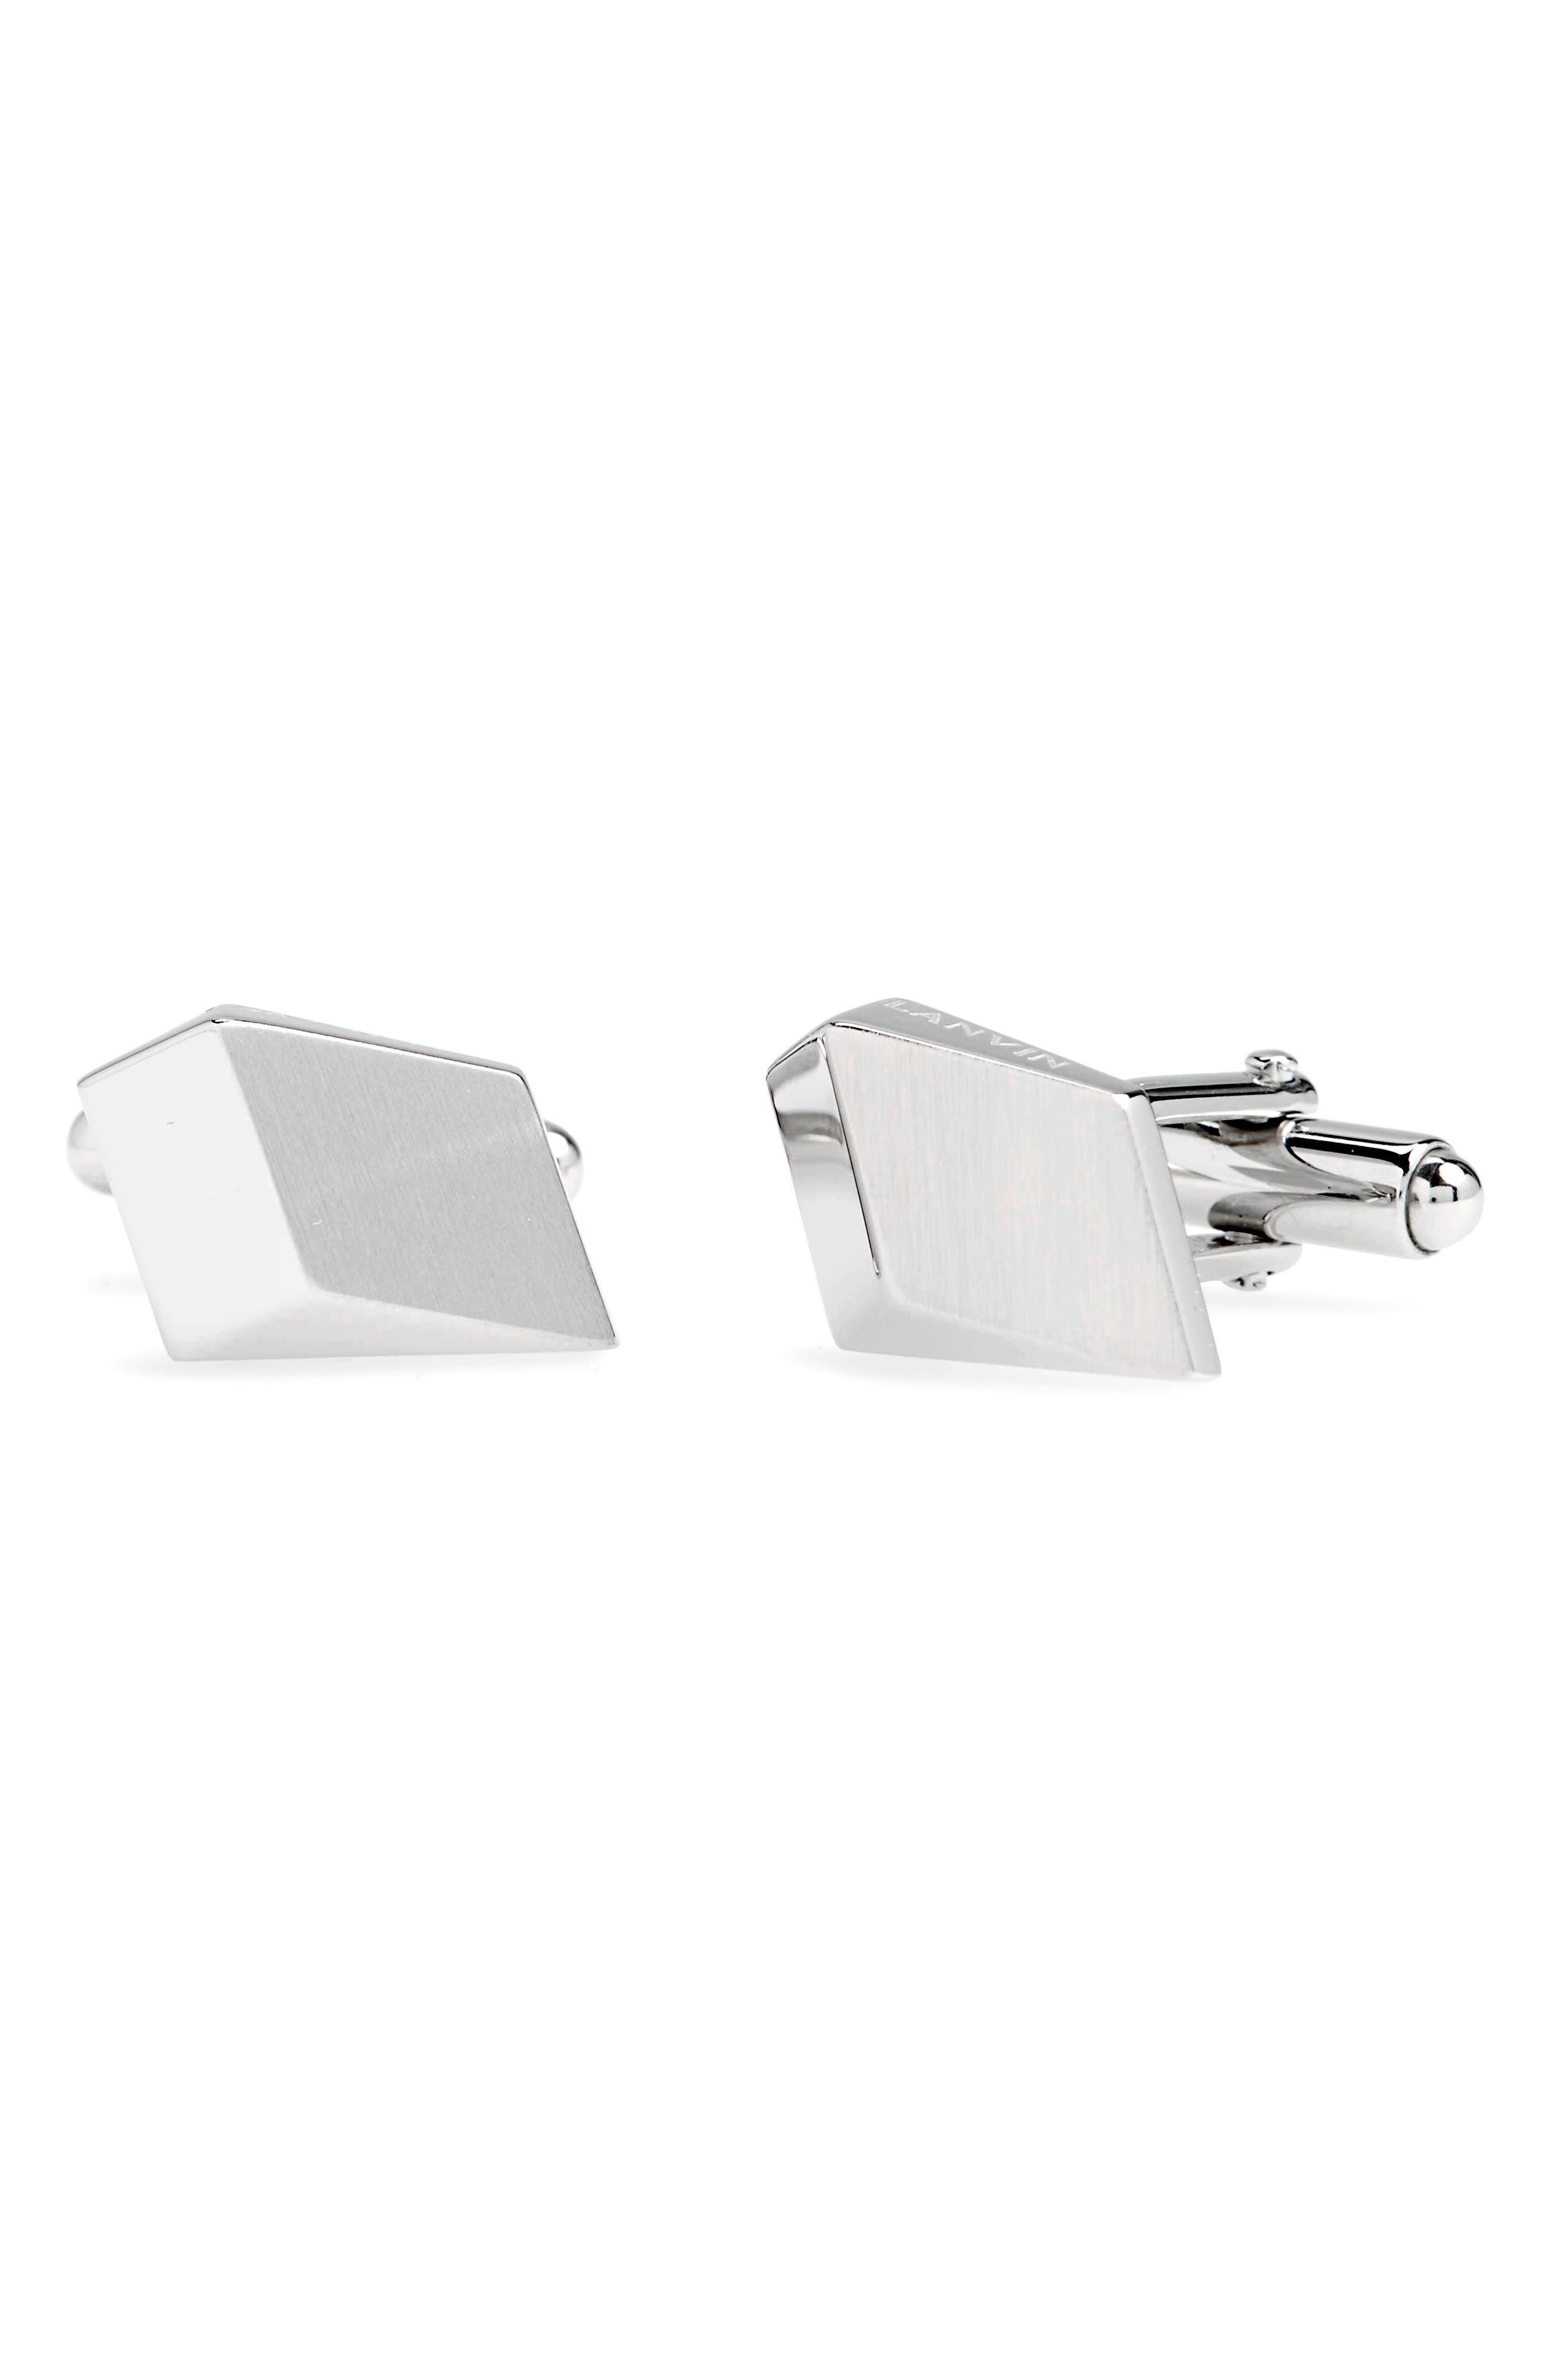 Geo Square Cuff Links,                         Main,                         color, 3 Rhodium